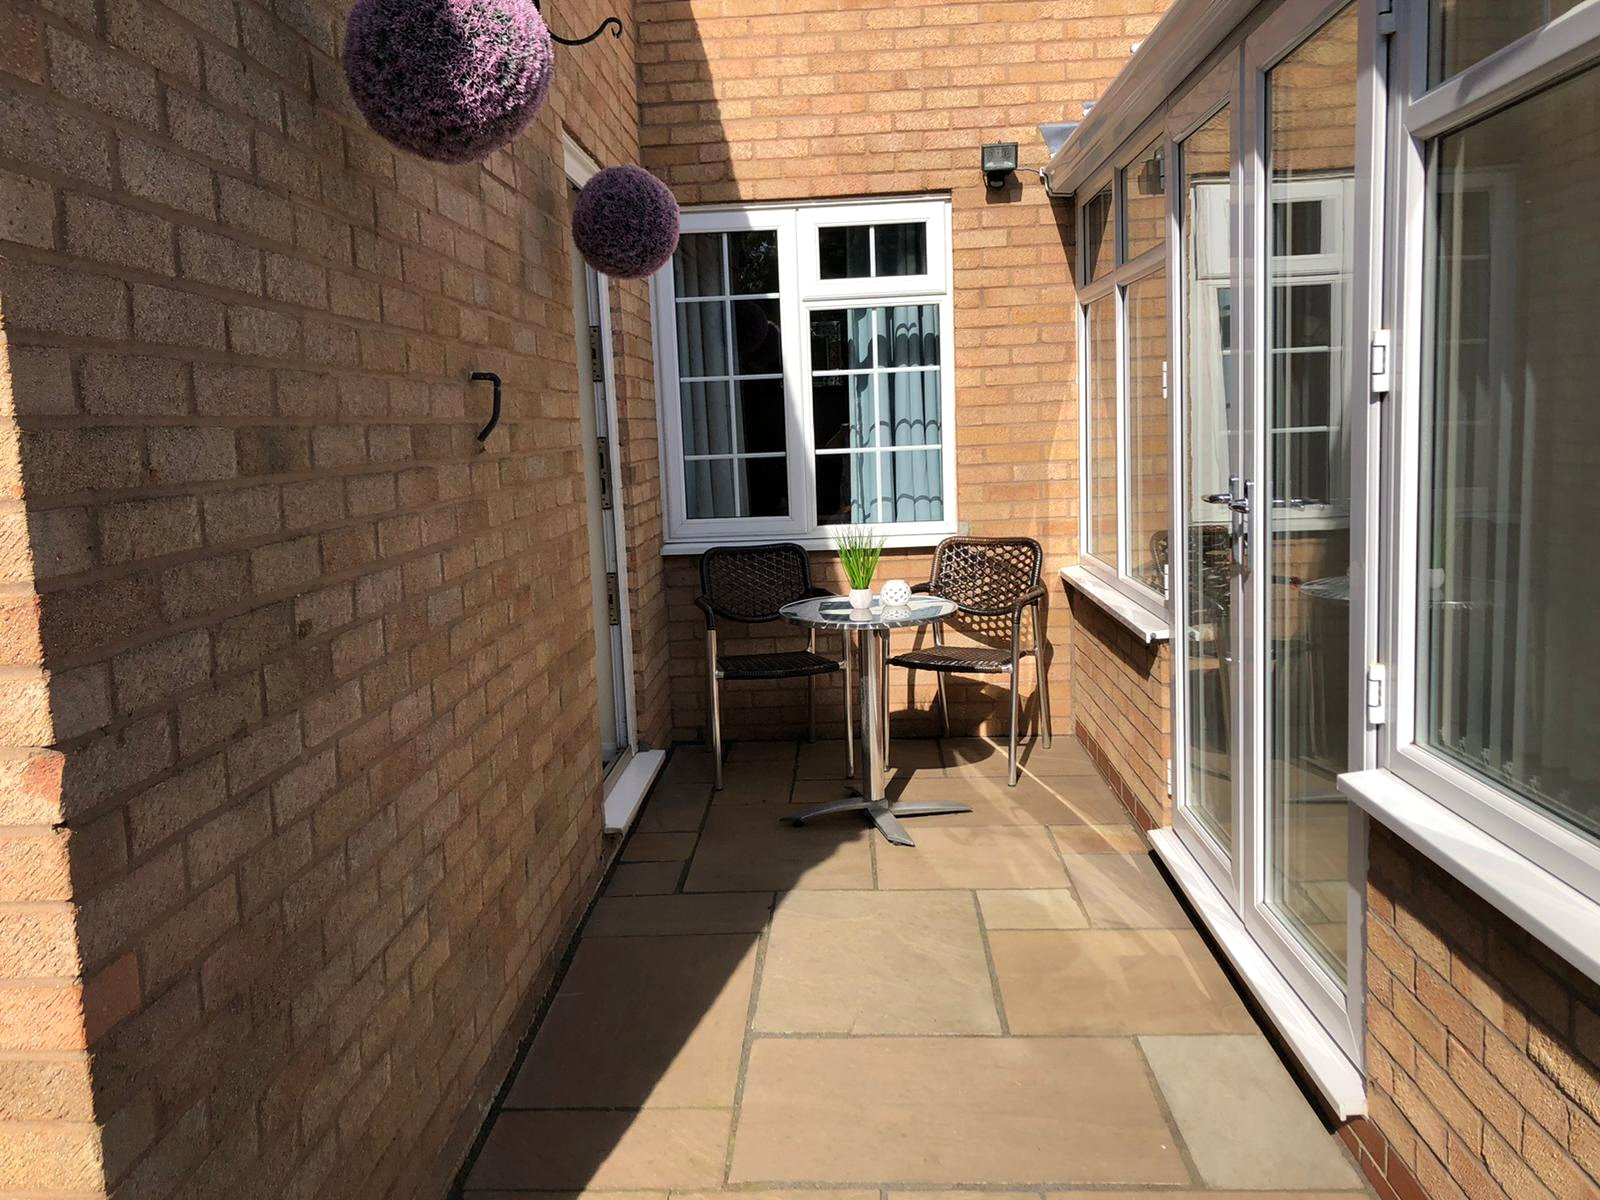 3 bed house for sale in Axis Way, Eaton Socon 12